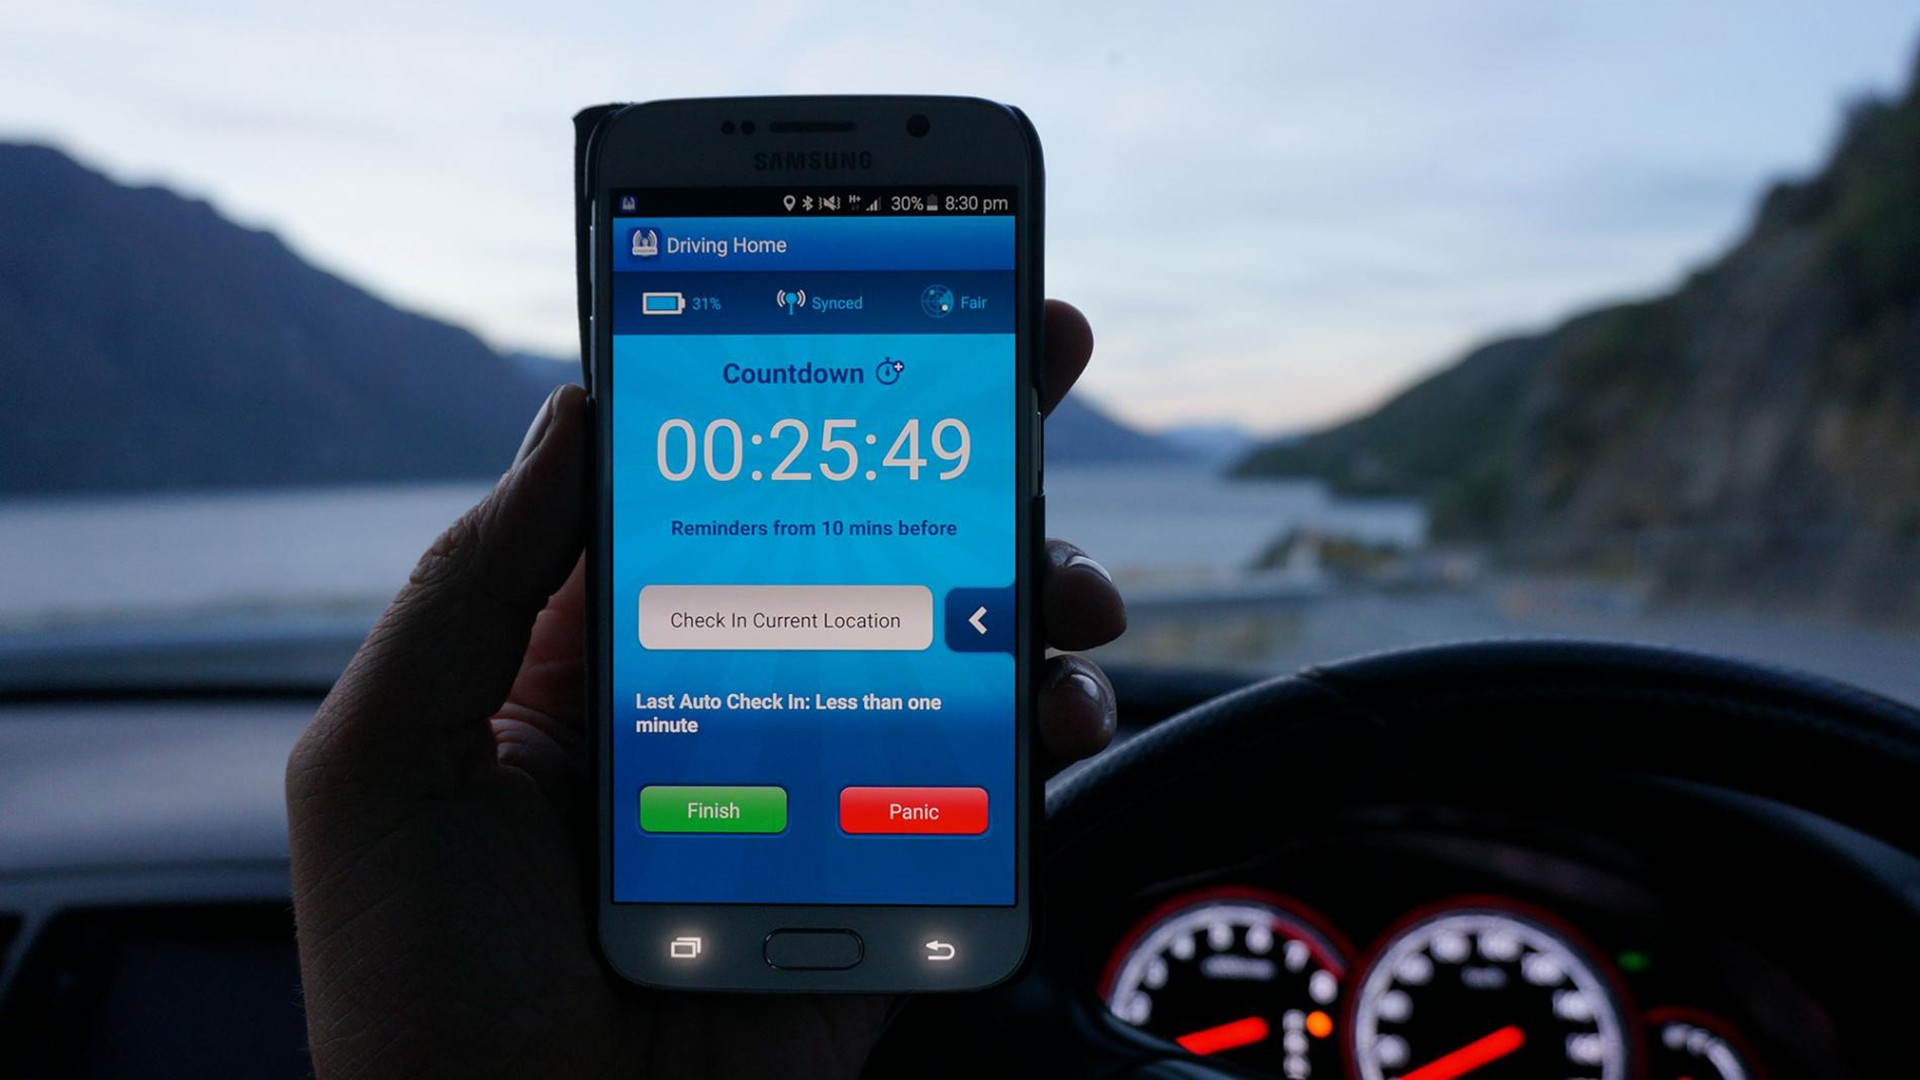 GetHomeSafe application shown on phone screen with car dashboard in background